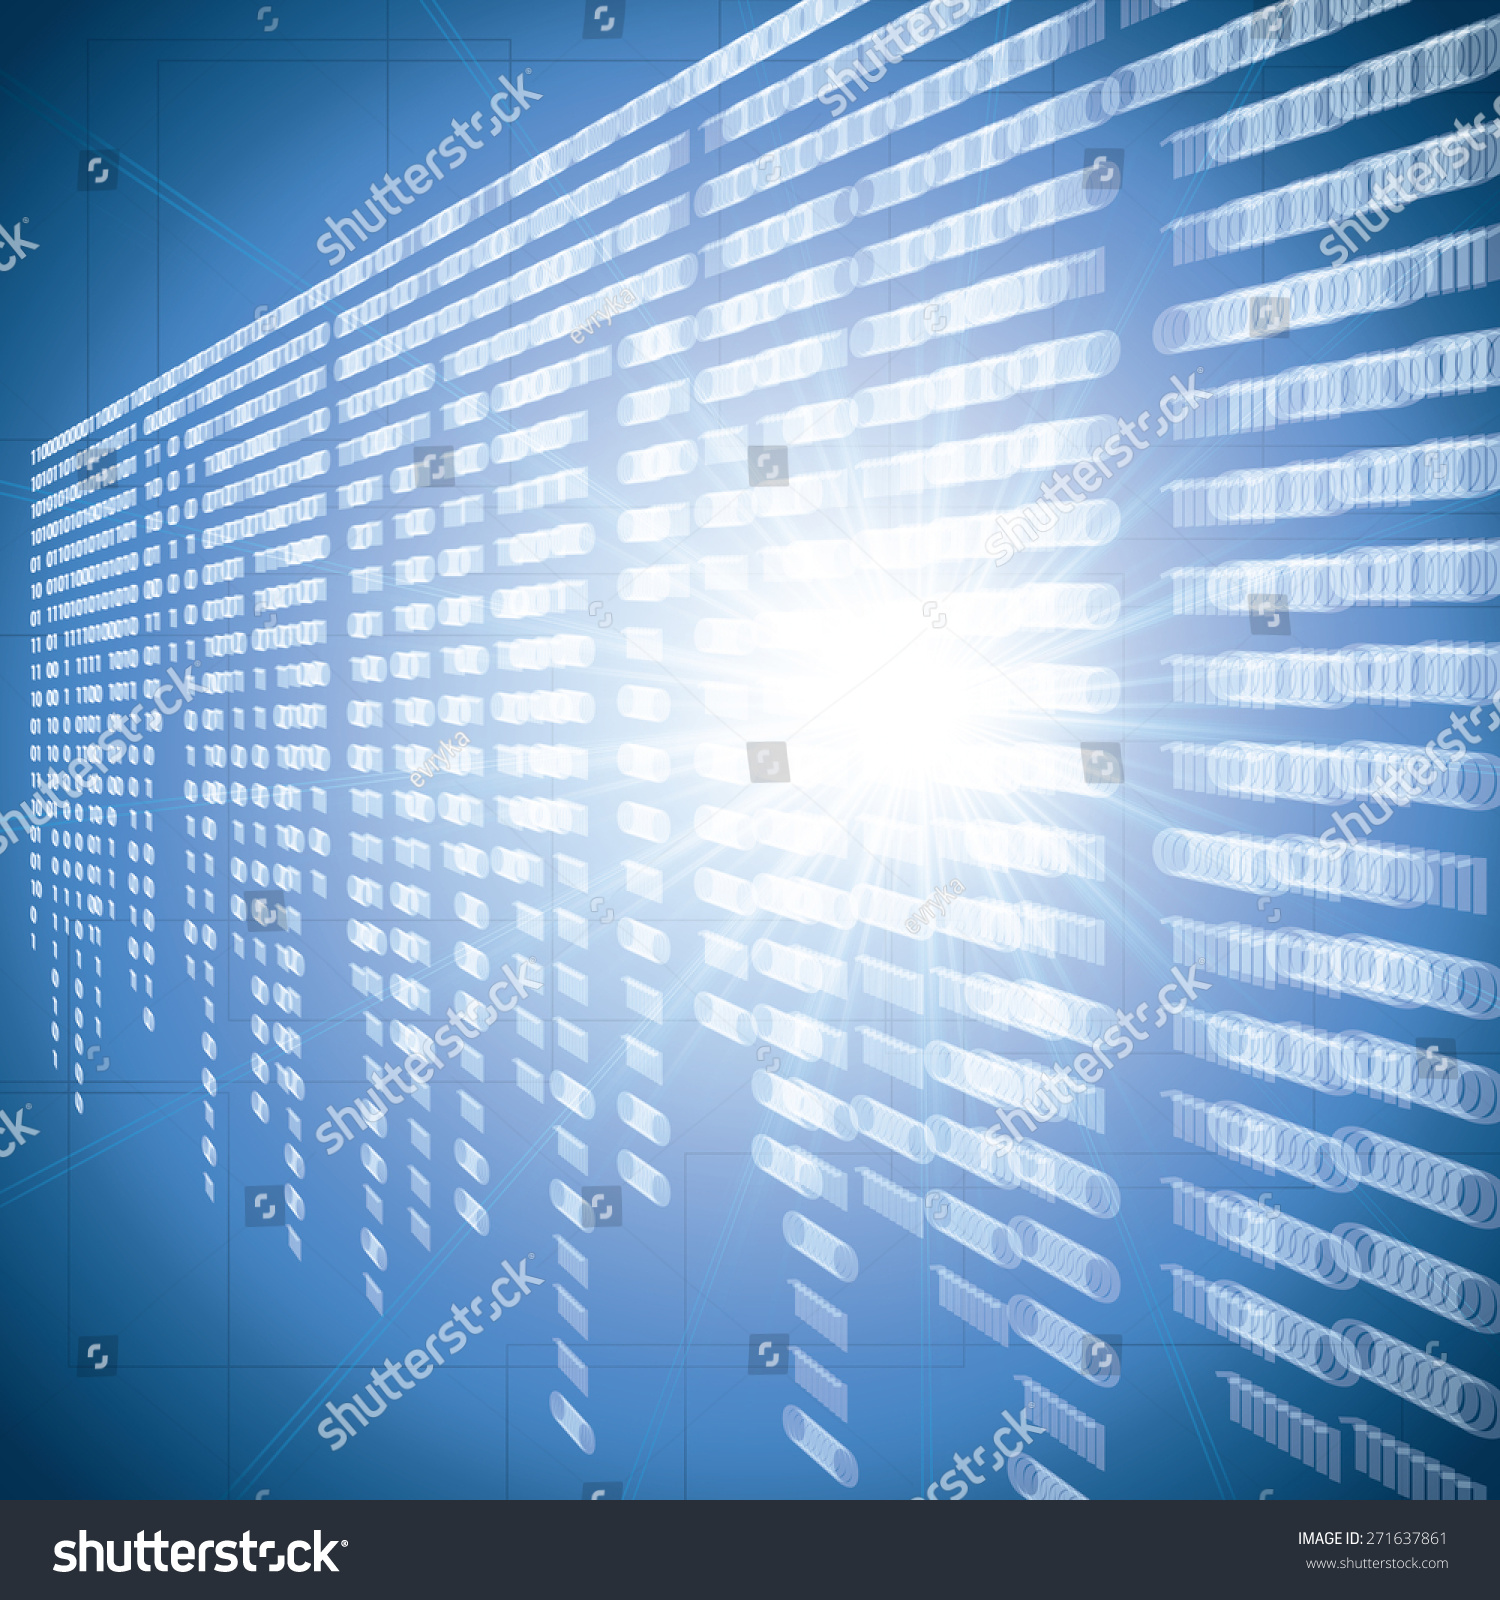 Abstract Tech Blur Blurry Binary Blue Stock Illustration 271637861 ...